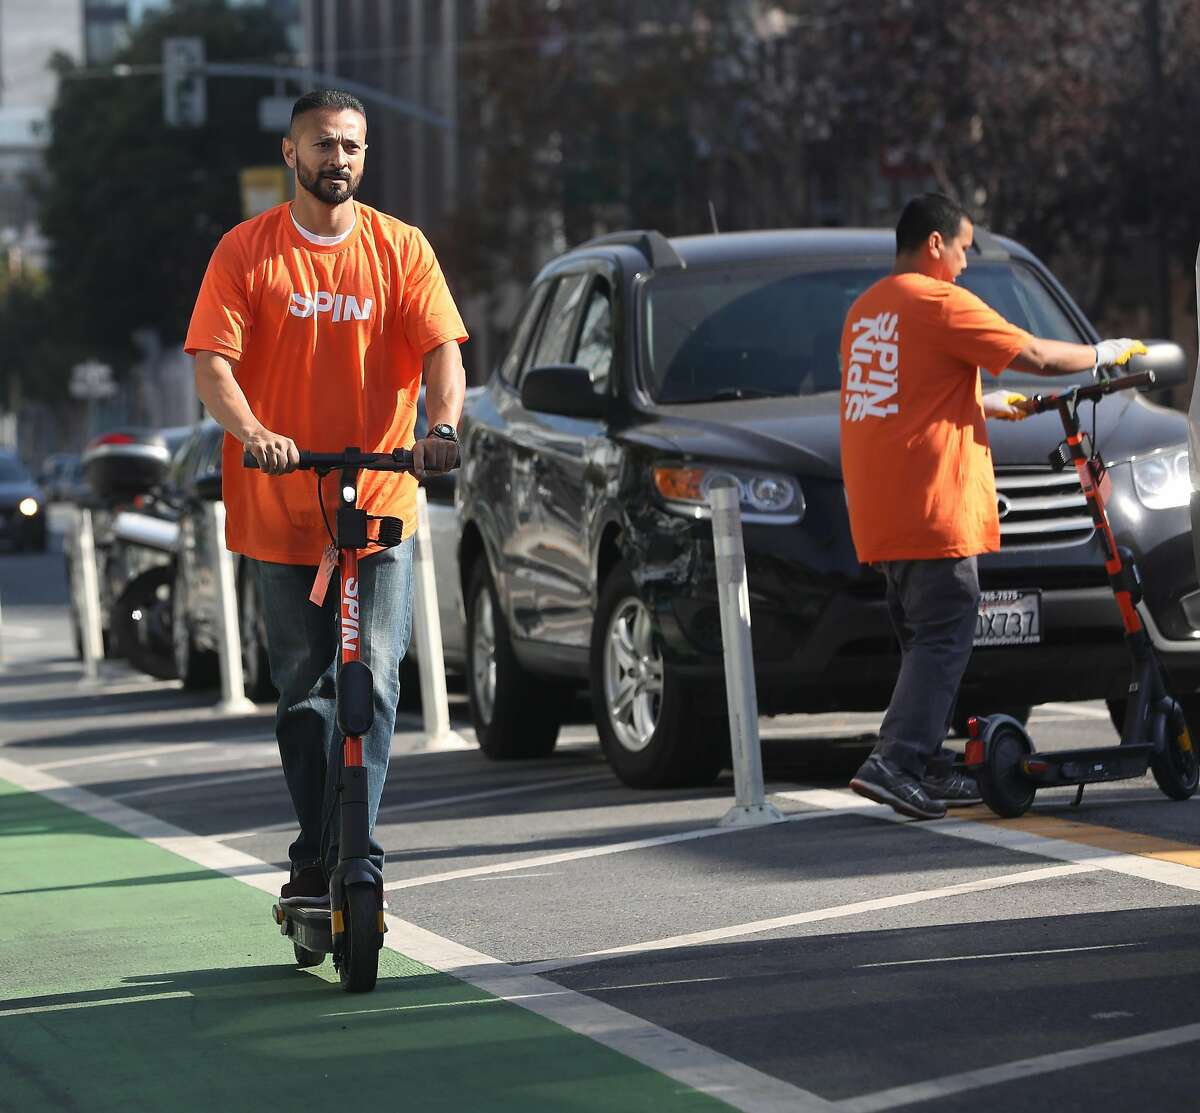 Spin staffer Jose Magano tries out a scooter as he prepares for the launch tomorrow on Monday, Oct. 14, 2019, in San Francisco, Calif.